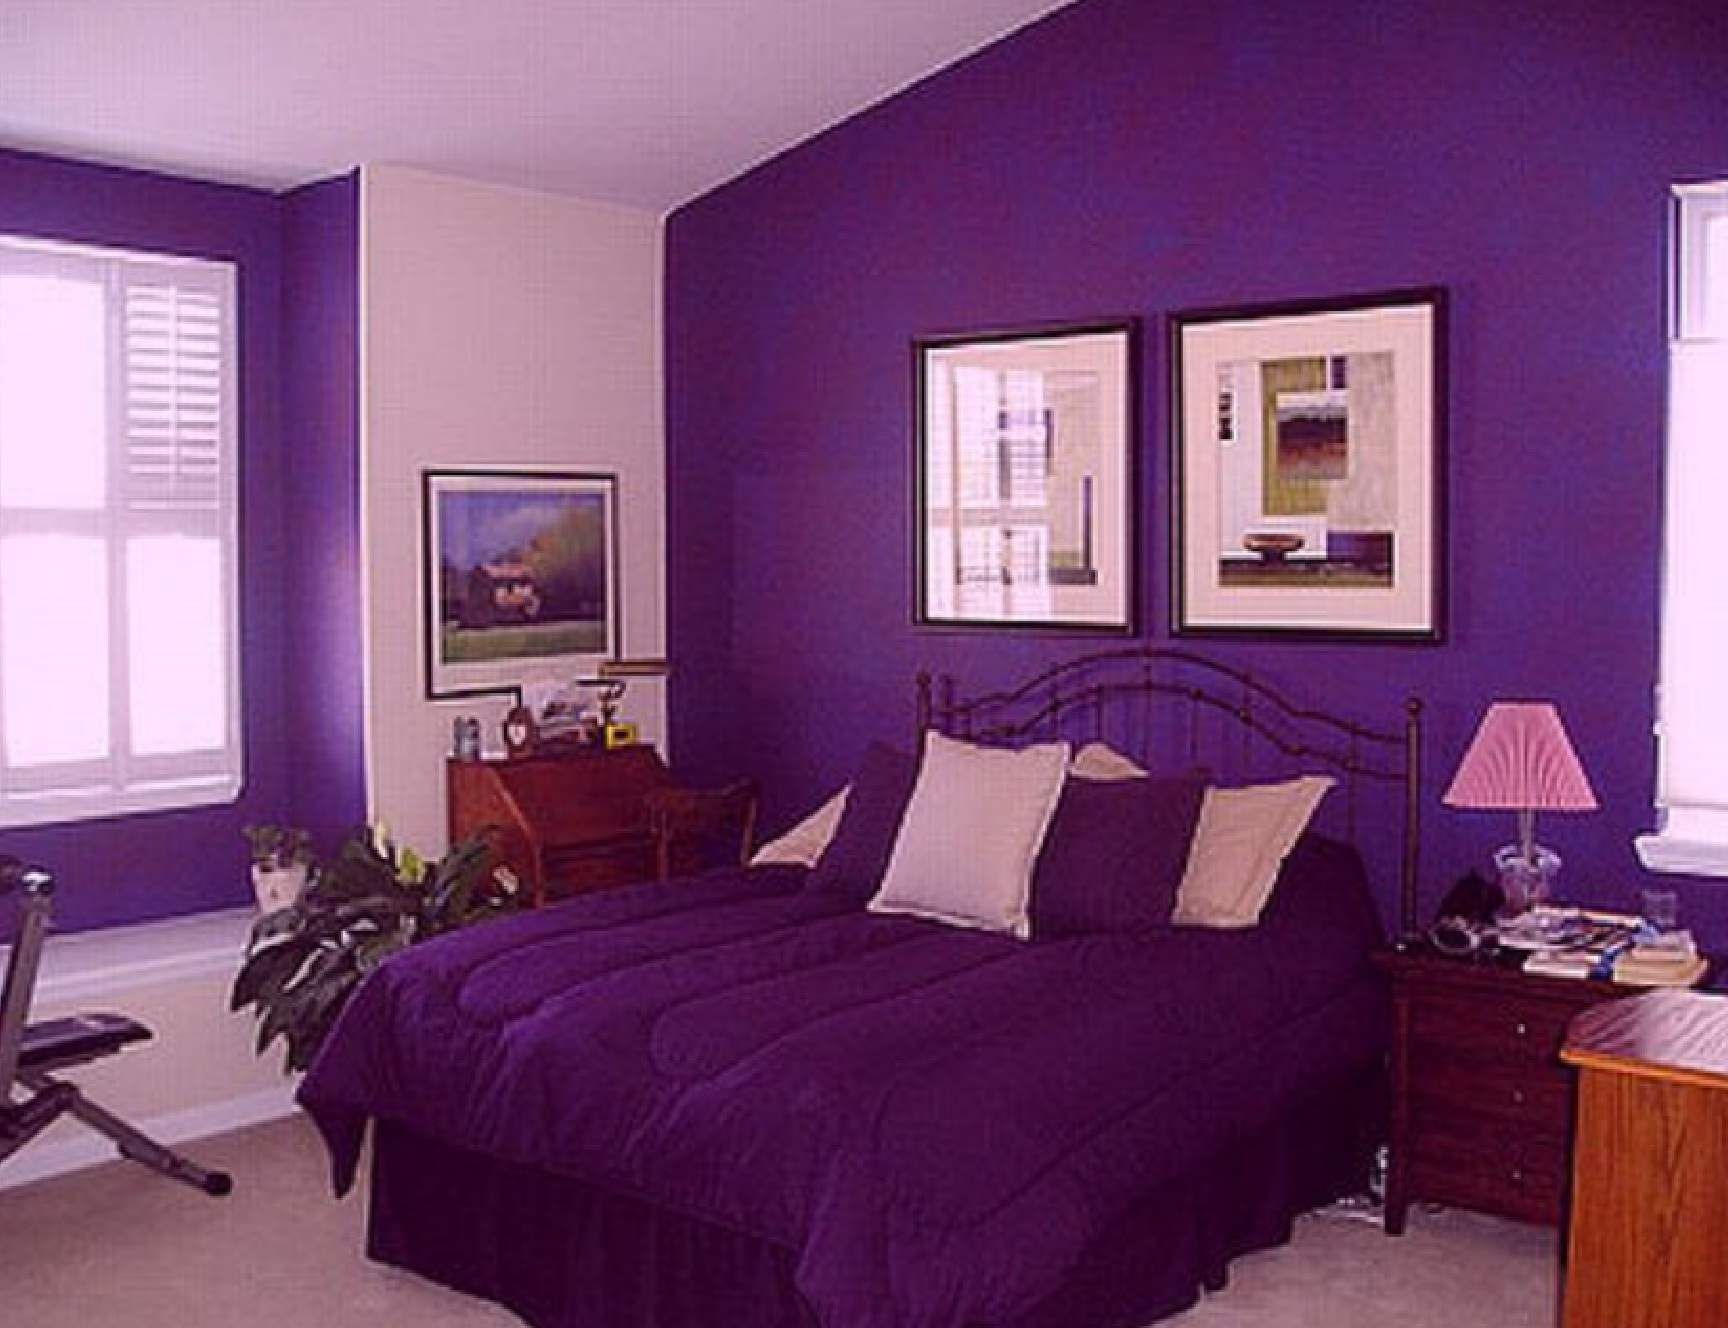 purple bed room ideas bedroom cute purple bedrooms firmones purple bedrooms is the